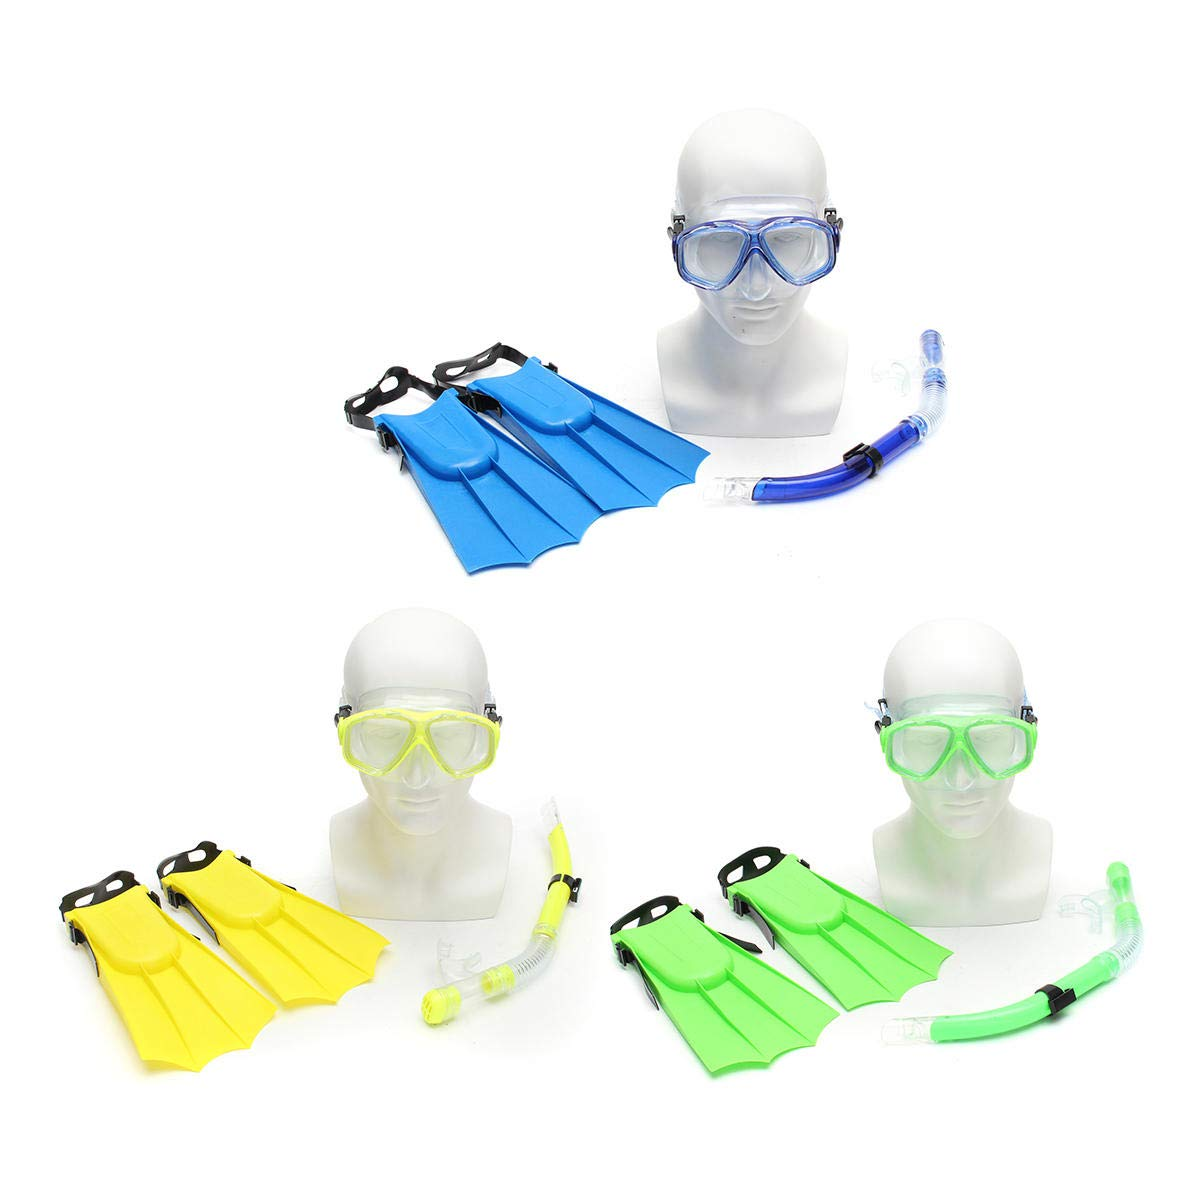 Shop Sport Kid Snorkel Mask Scuba Goggles + Breathing Tube+ Webbed Feet Swimming Diving Set - Yellow by Shop Sport (Image #4)